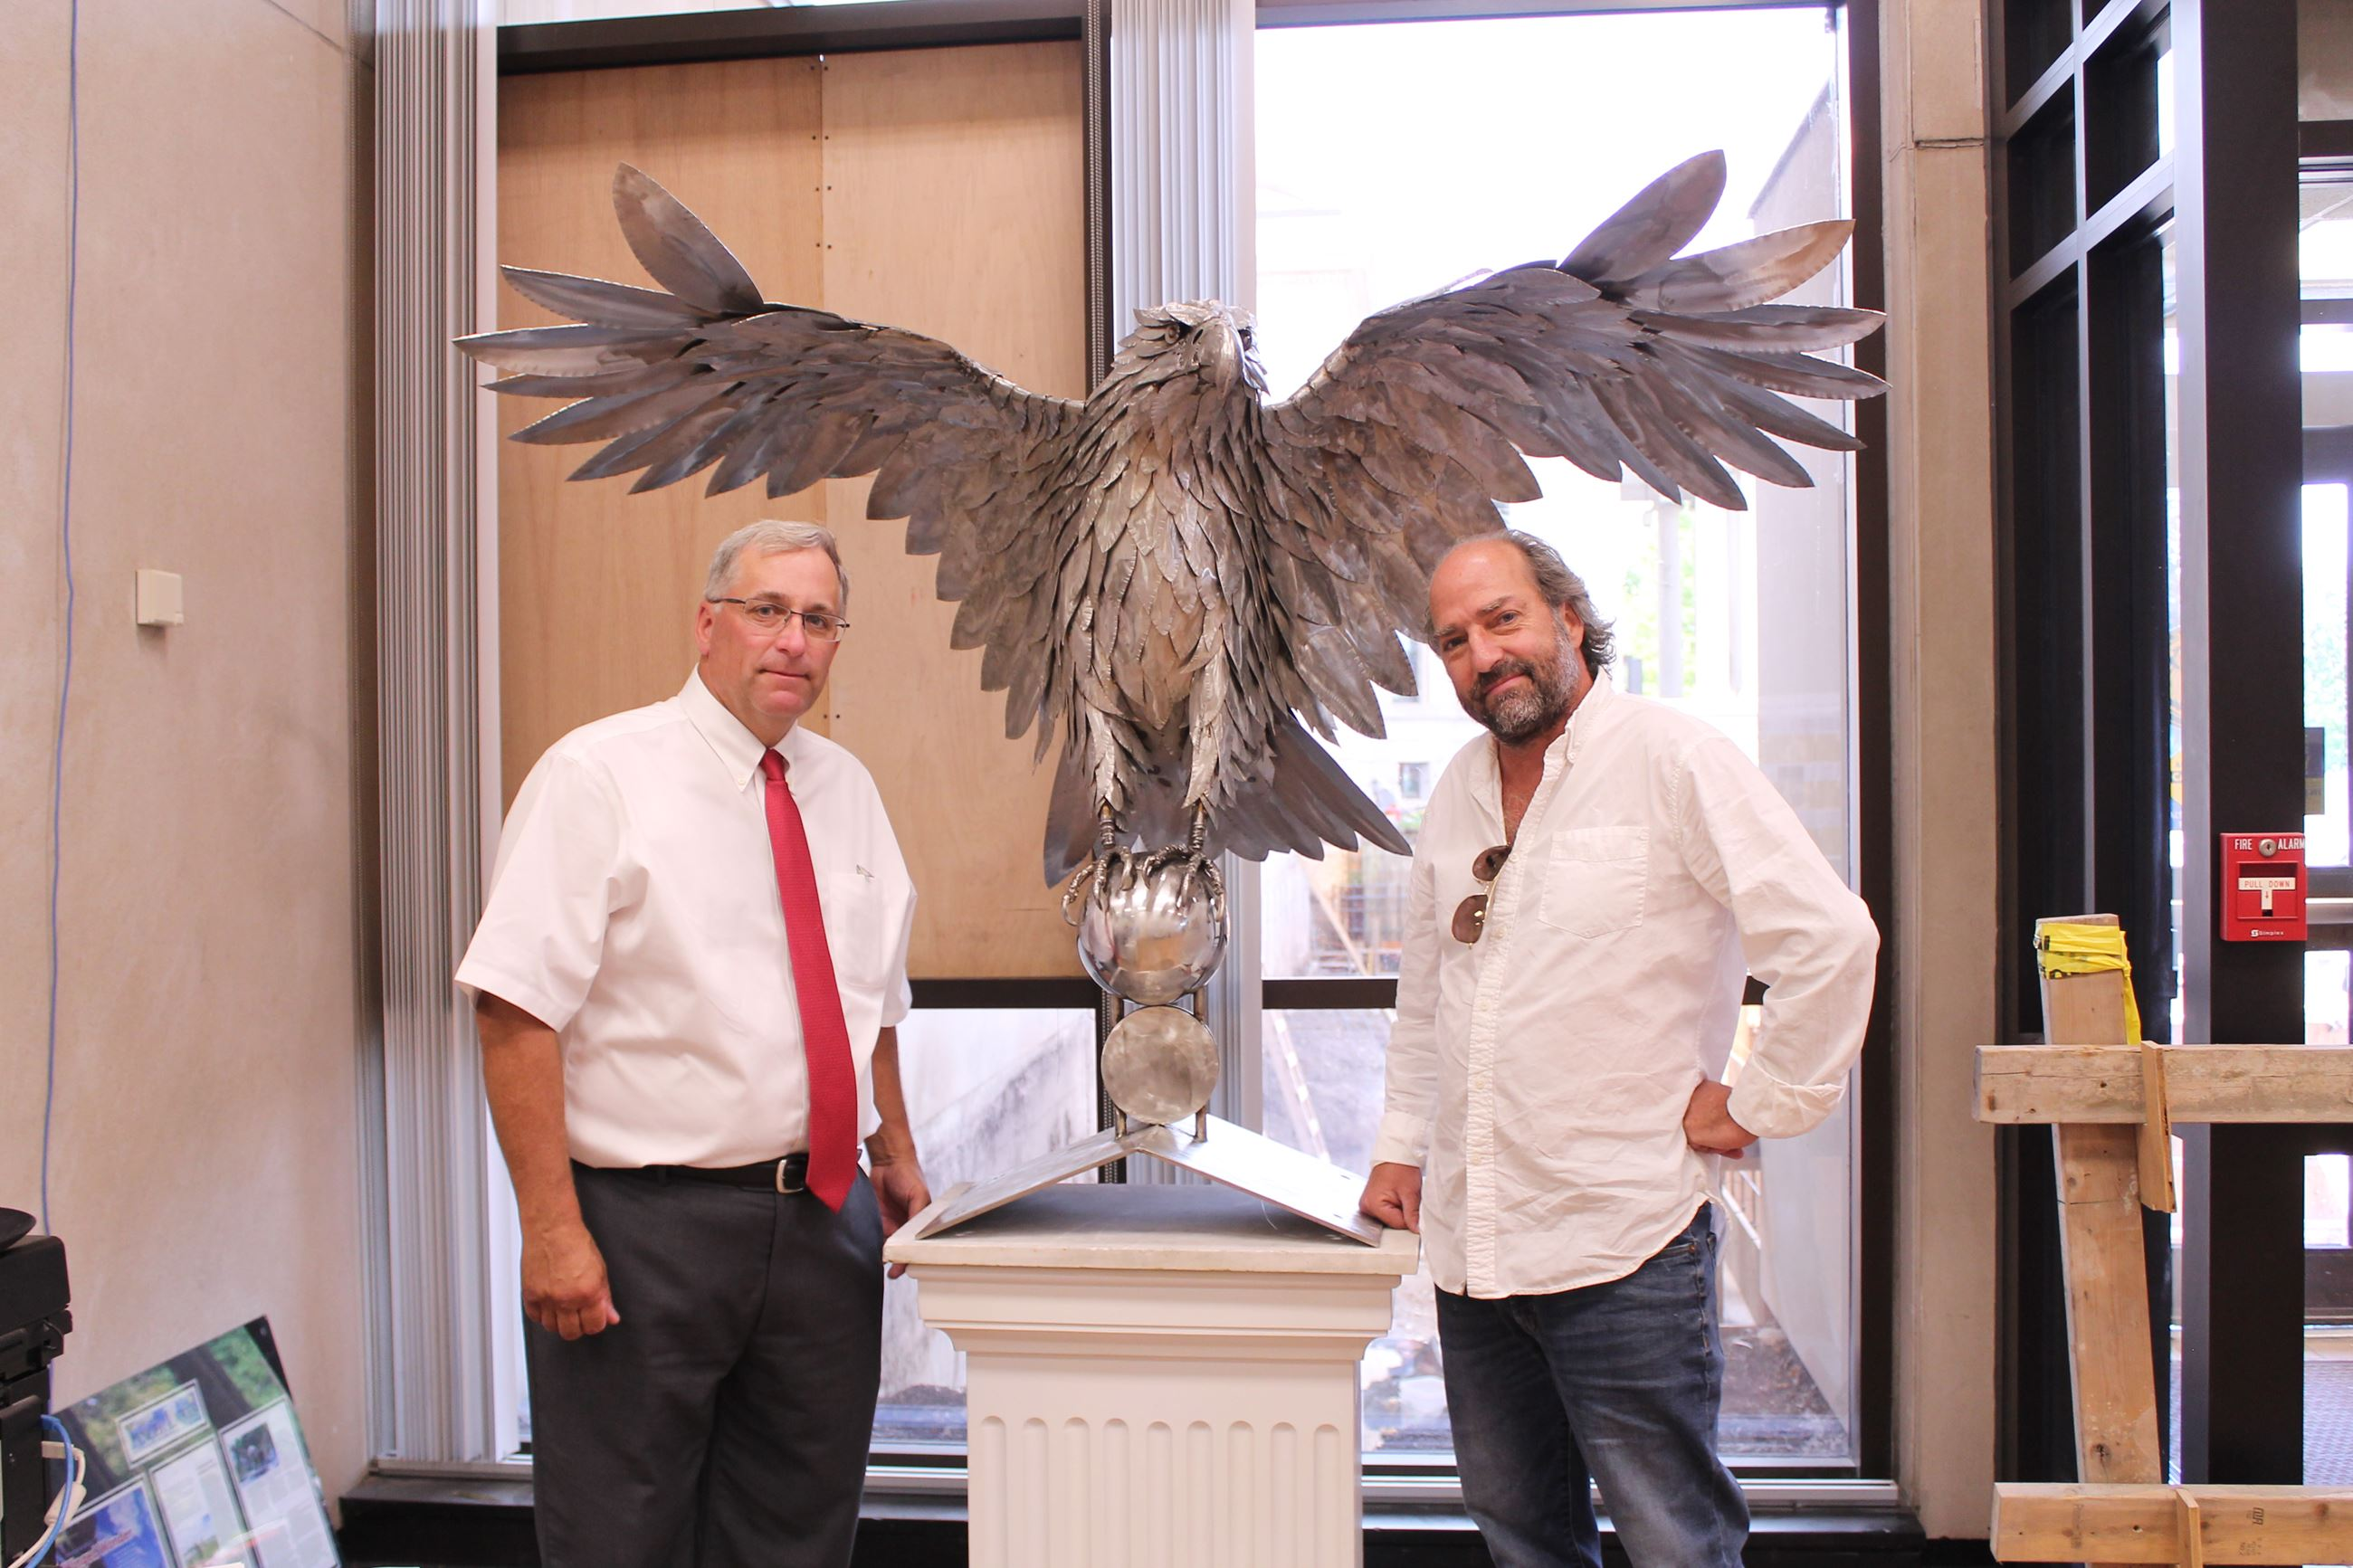 John Becker, Chairman and James Seaman, Sculptor